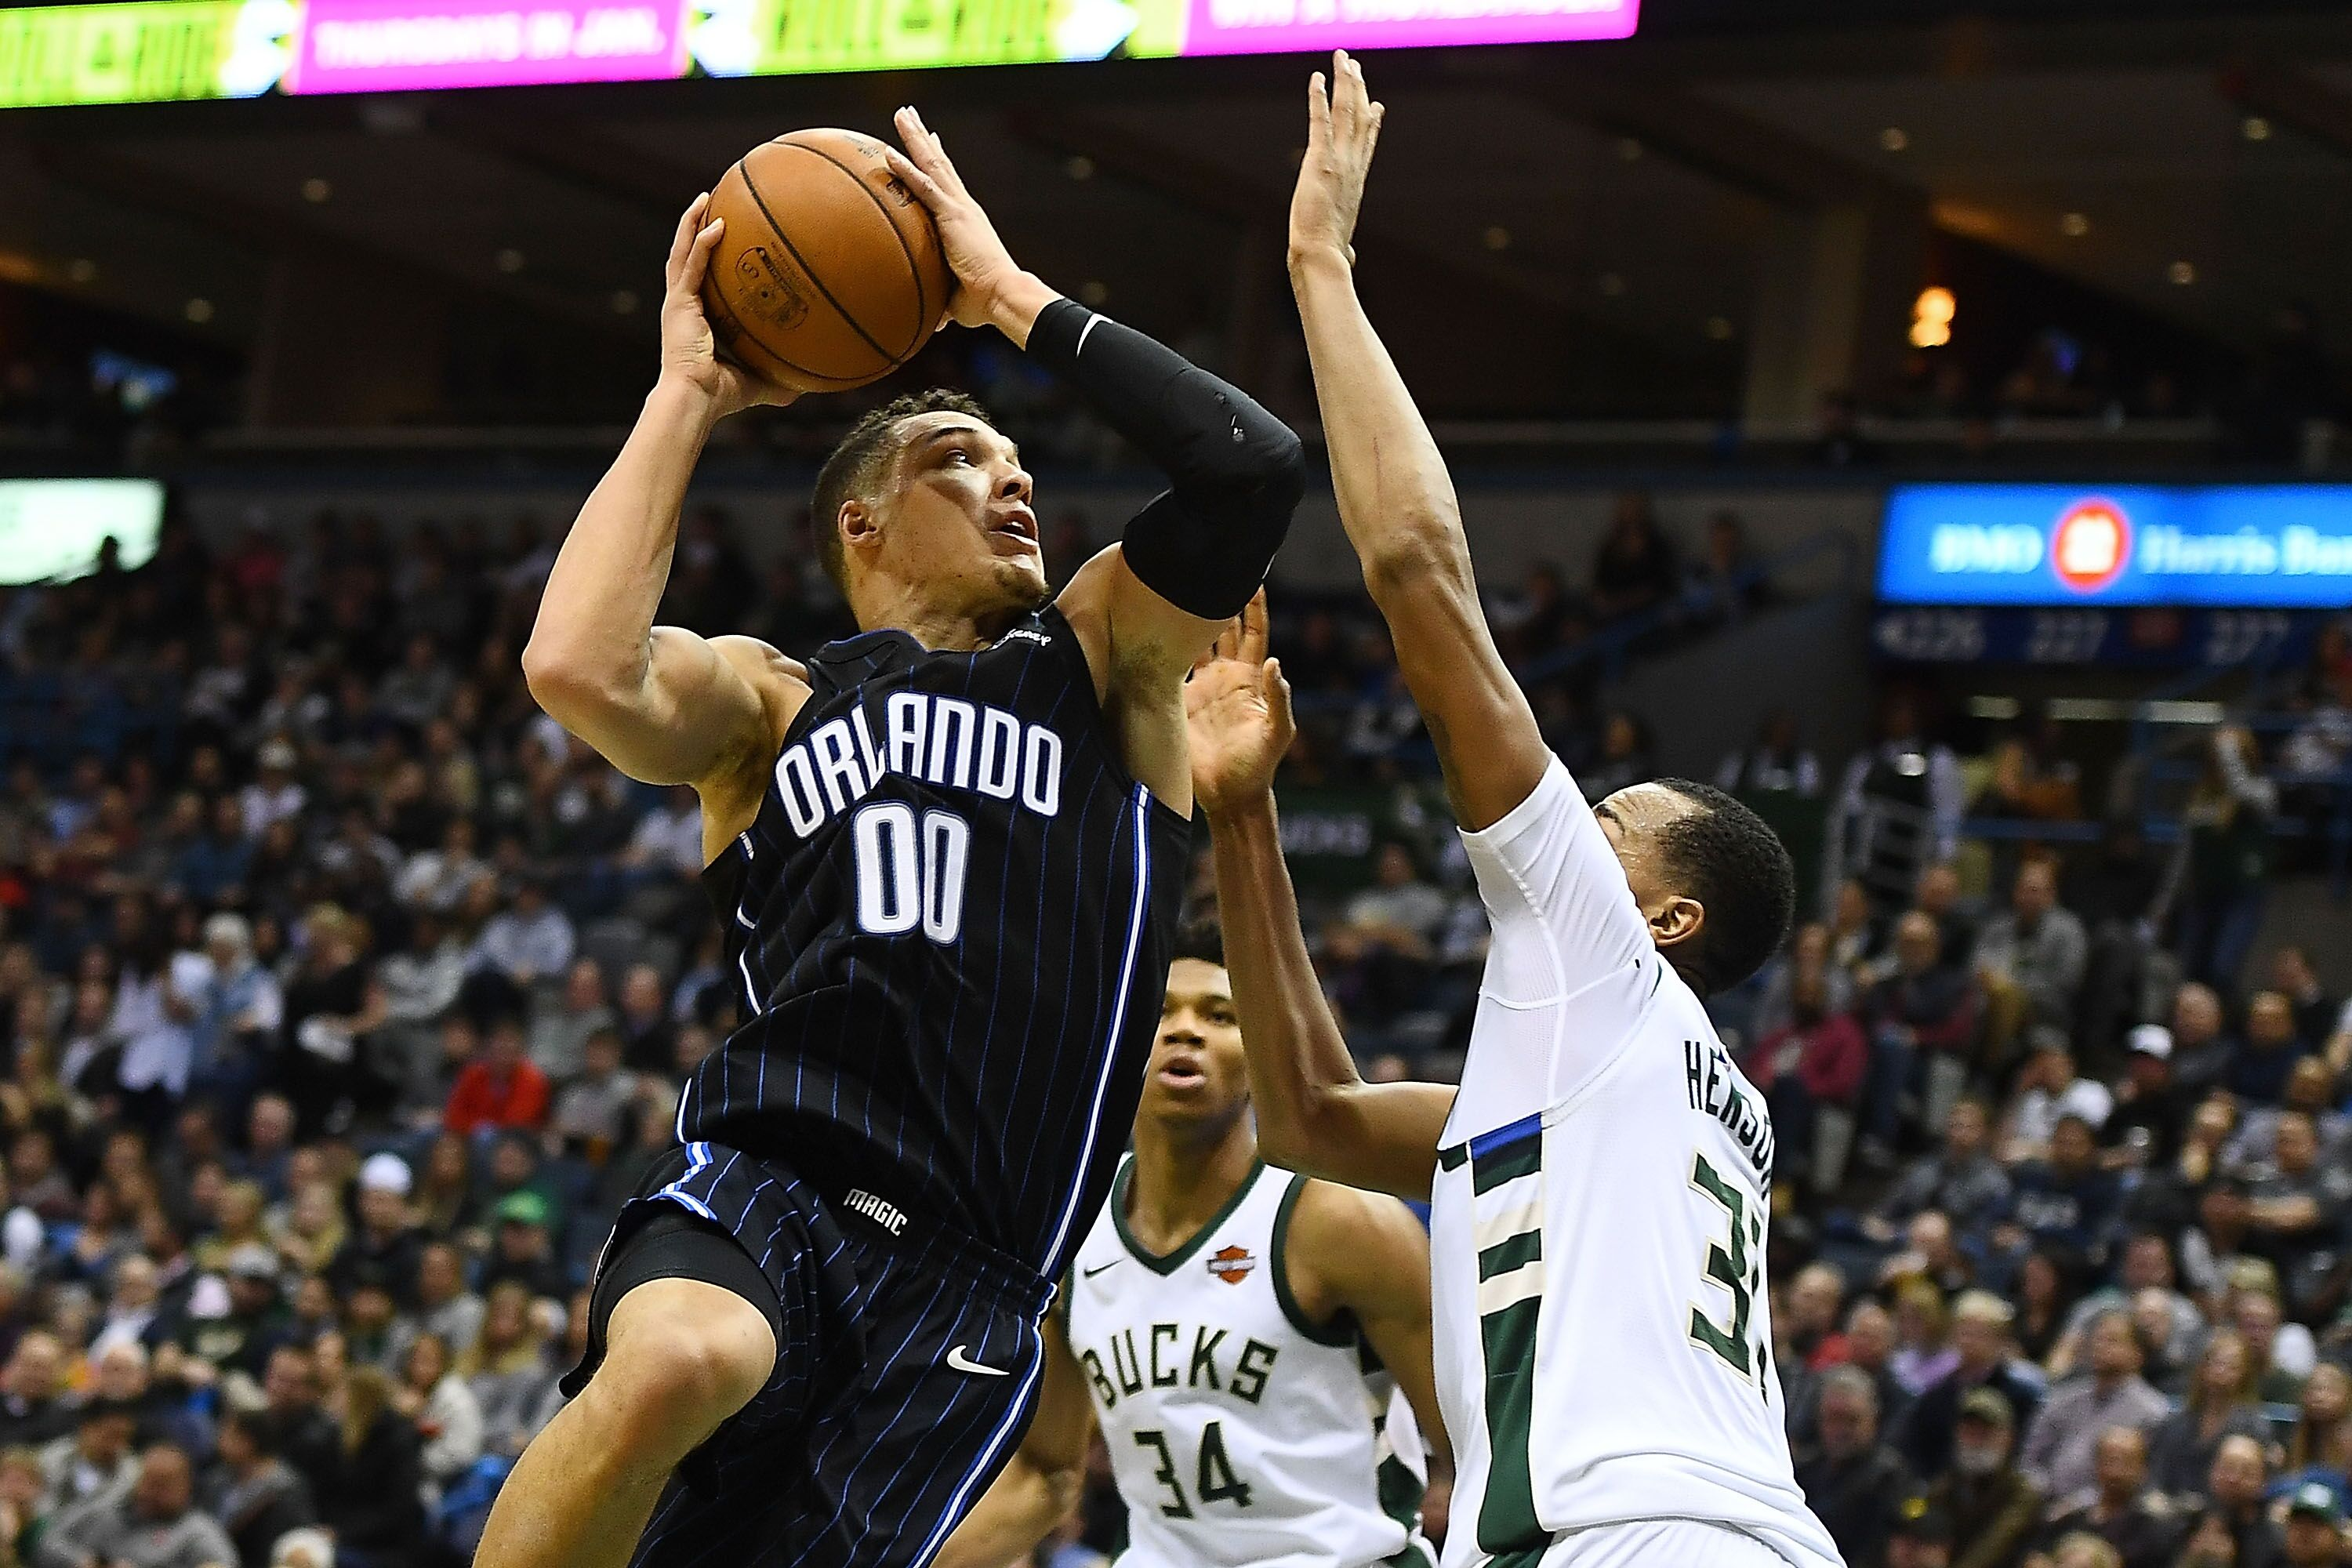 MILWAUKEE, WI - JANUARY 10: Aaron Gordon #00 of the Orlando Magic drives to the basket against John Henson #31 of the Milwaukee Bucks during a game at the Bradley Center on January 10, 2018 in Milwaukee, Wisconsin. NOTE TO USER: User expressly acknowledges and agrees that, by downloading and or using this photograph, User is consenting to the terms and conditions of the Getty Images License Agreement. (Photo by Stacy Revere/Getty Images)